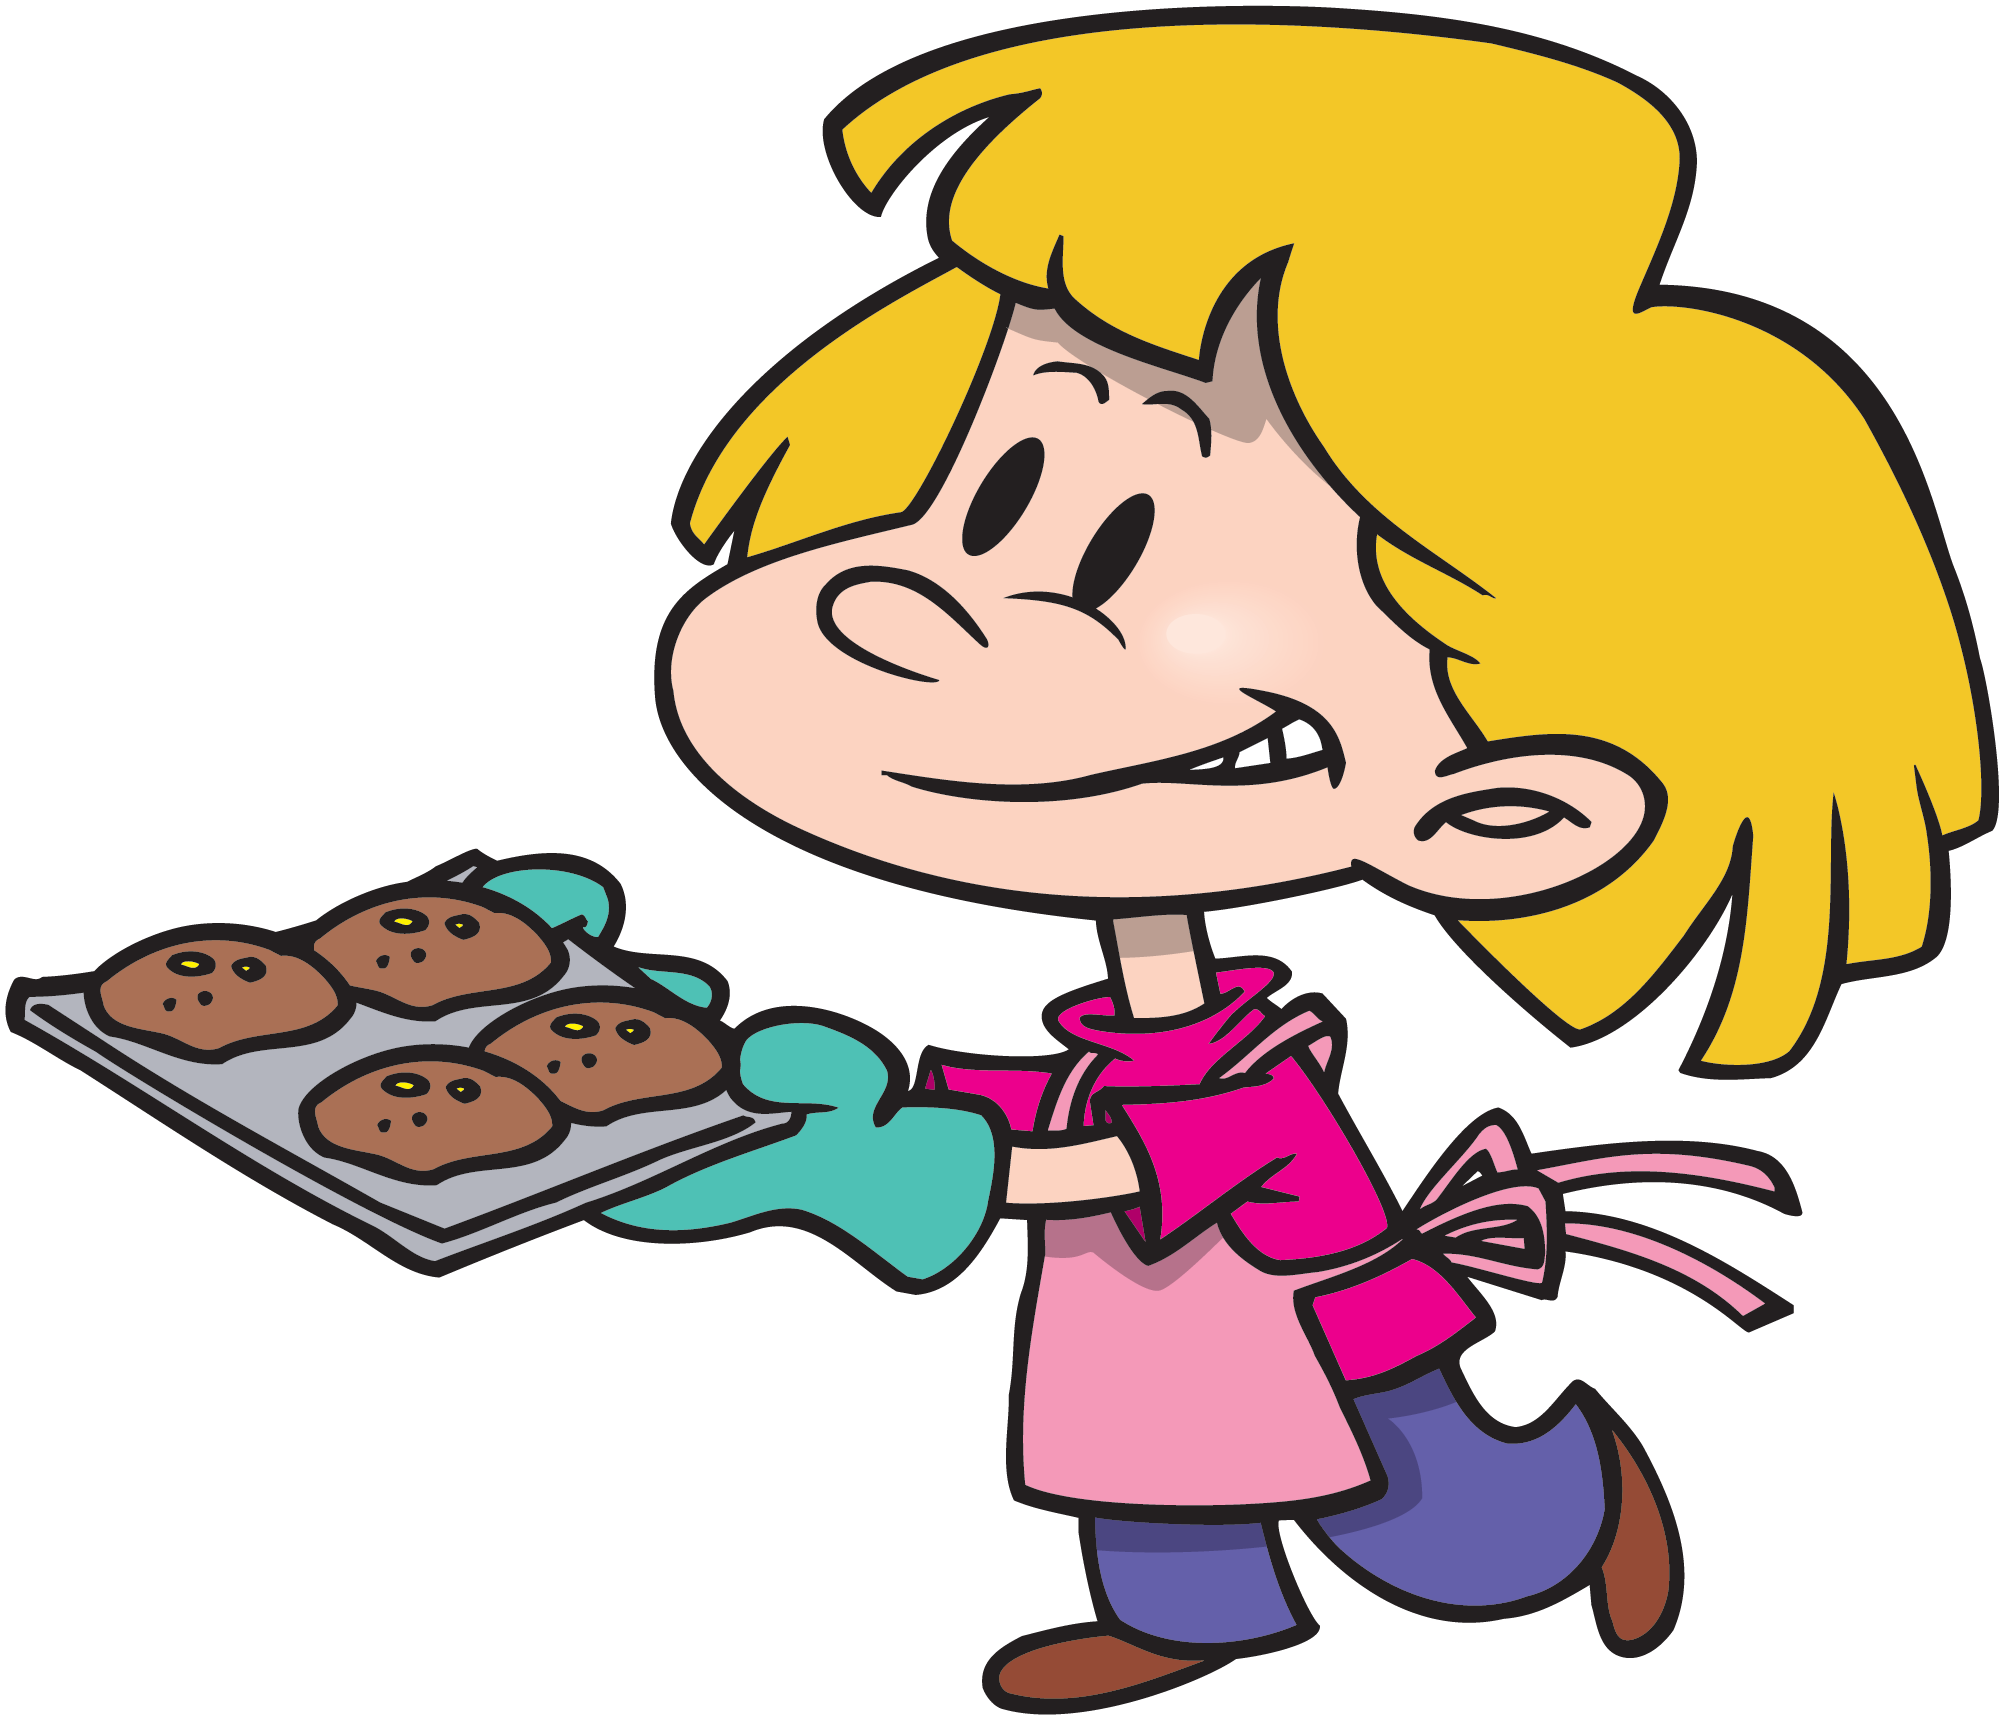 Muffins clipart kid. Kids cooking images png